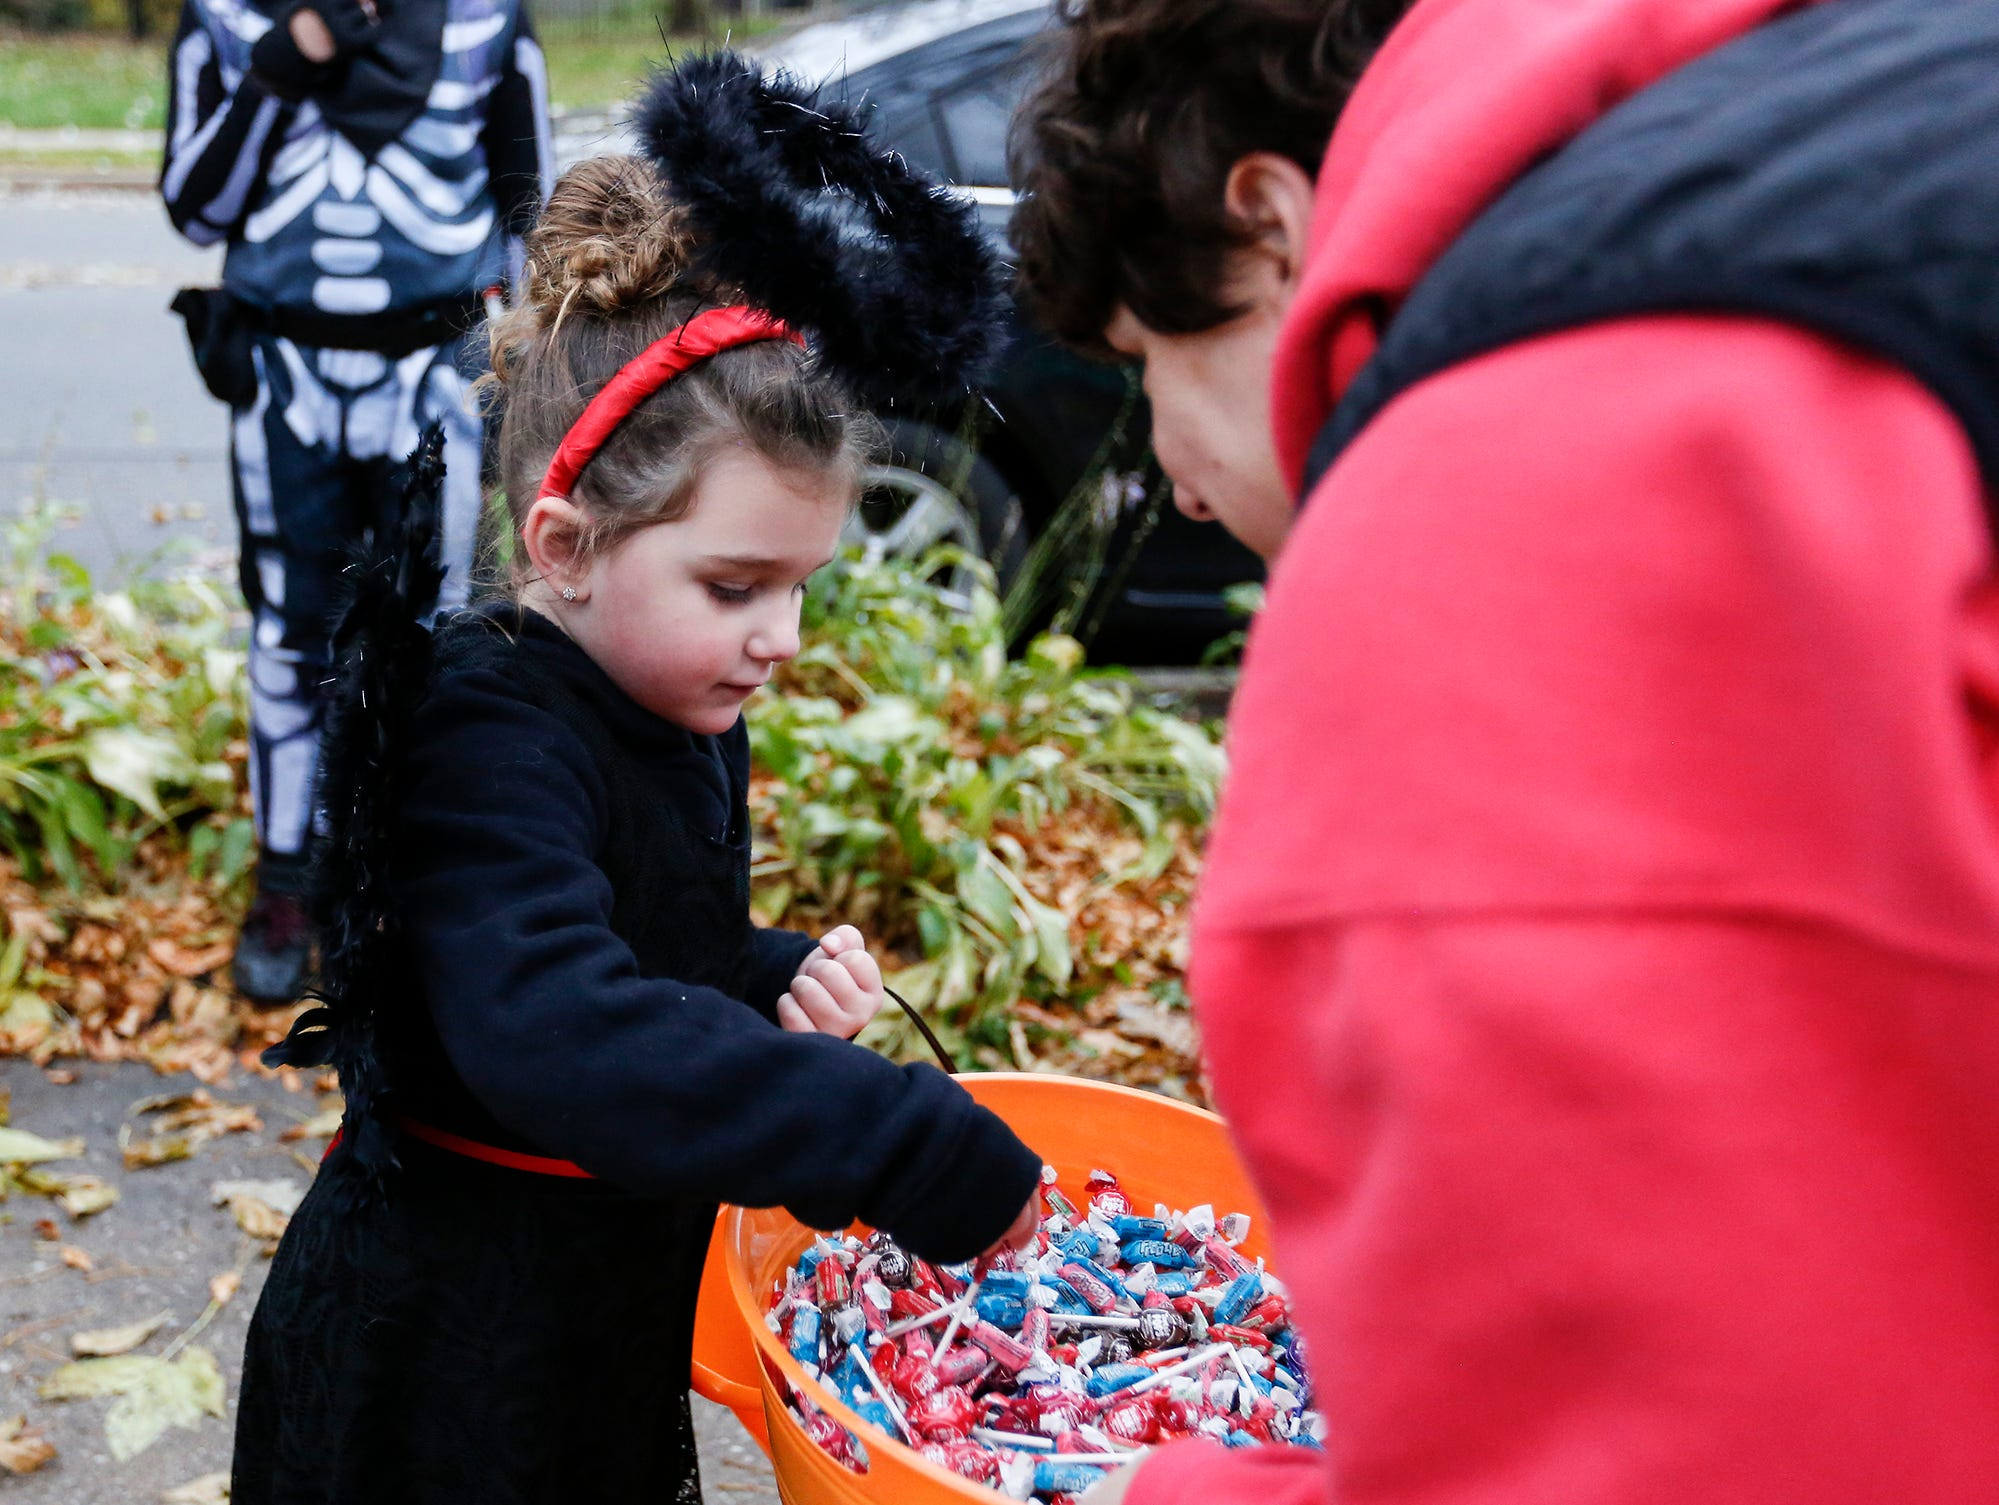 Kali Reinhart of Fond du Lac picks out some candy while trick or treating Sunday, October 28, 2018 in Fond du Lac, Wisconsin. Doug Raflik/USA TODAY NETWORK-Wisconsin